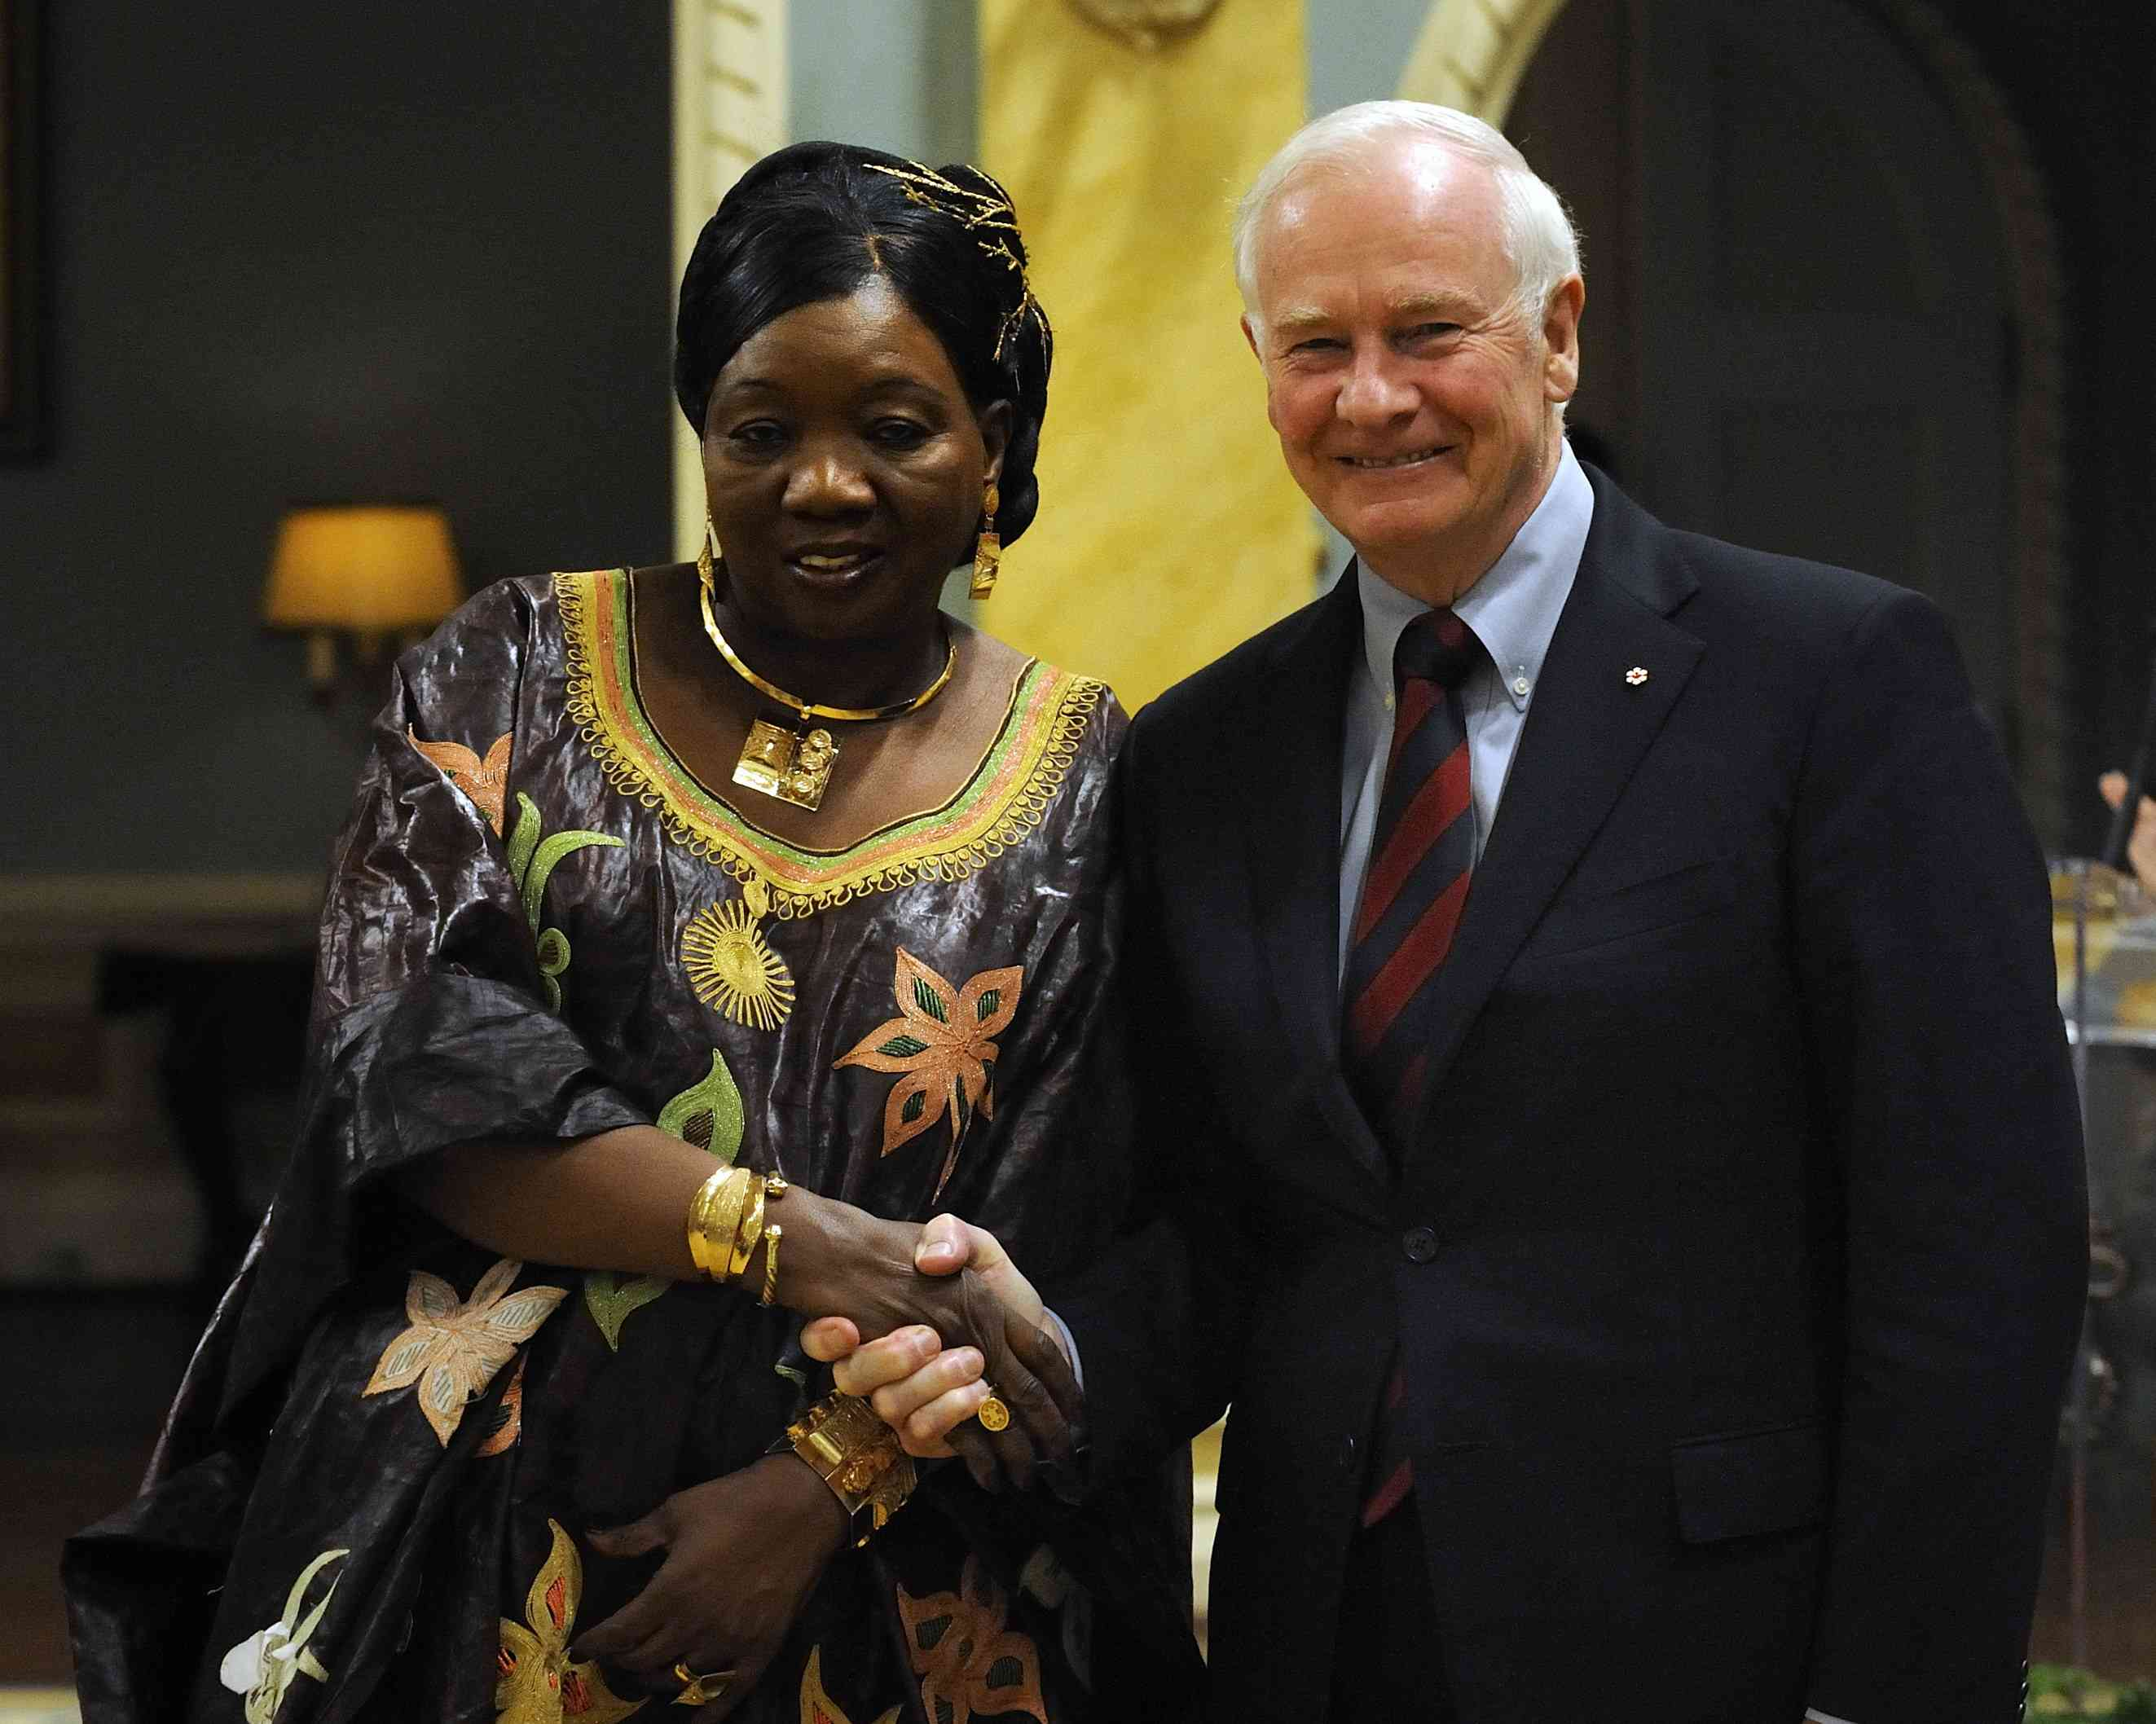 The Governor General received the credentials of Her Excellency Traoré Ami Diallo, Ambassador of the Republic of Mali.